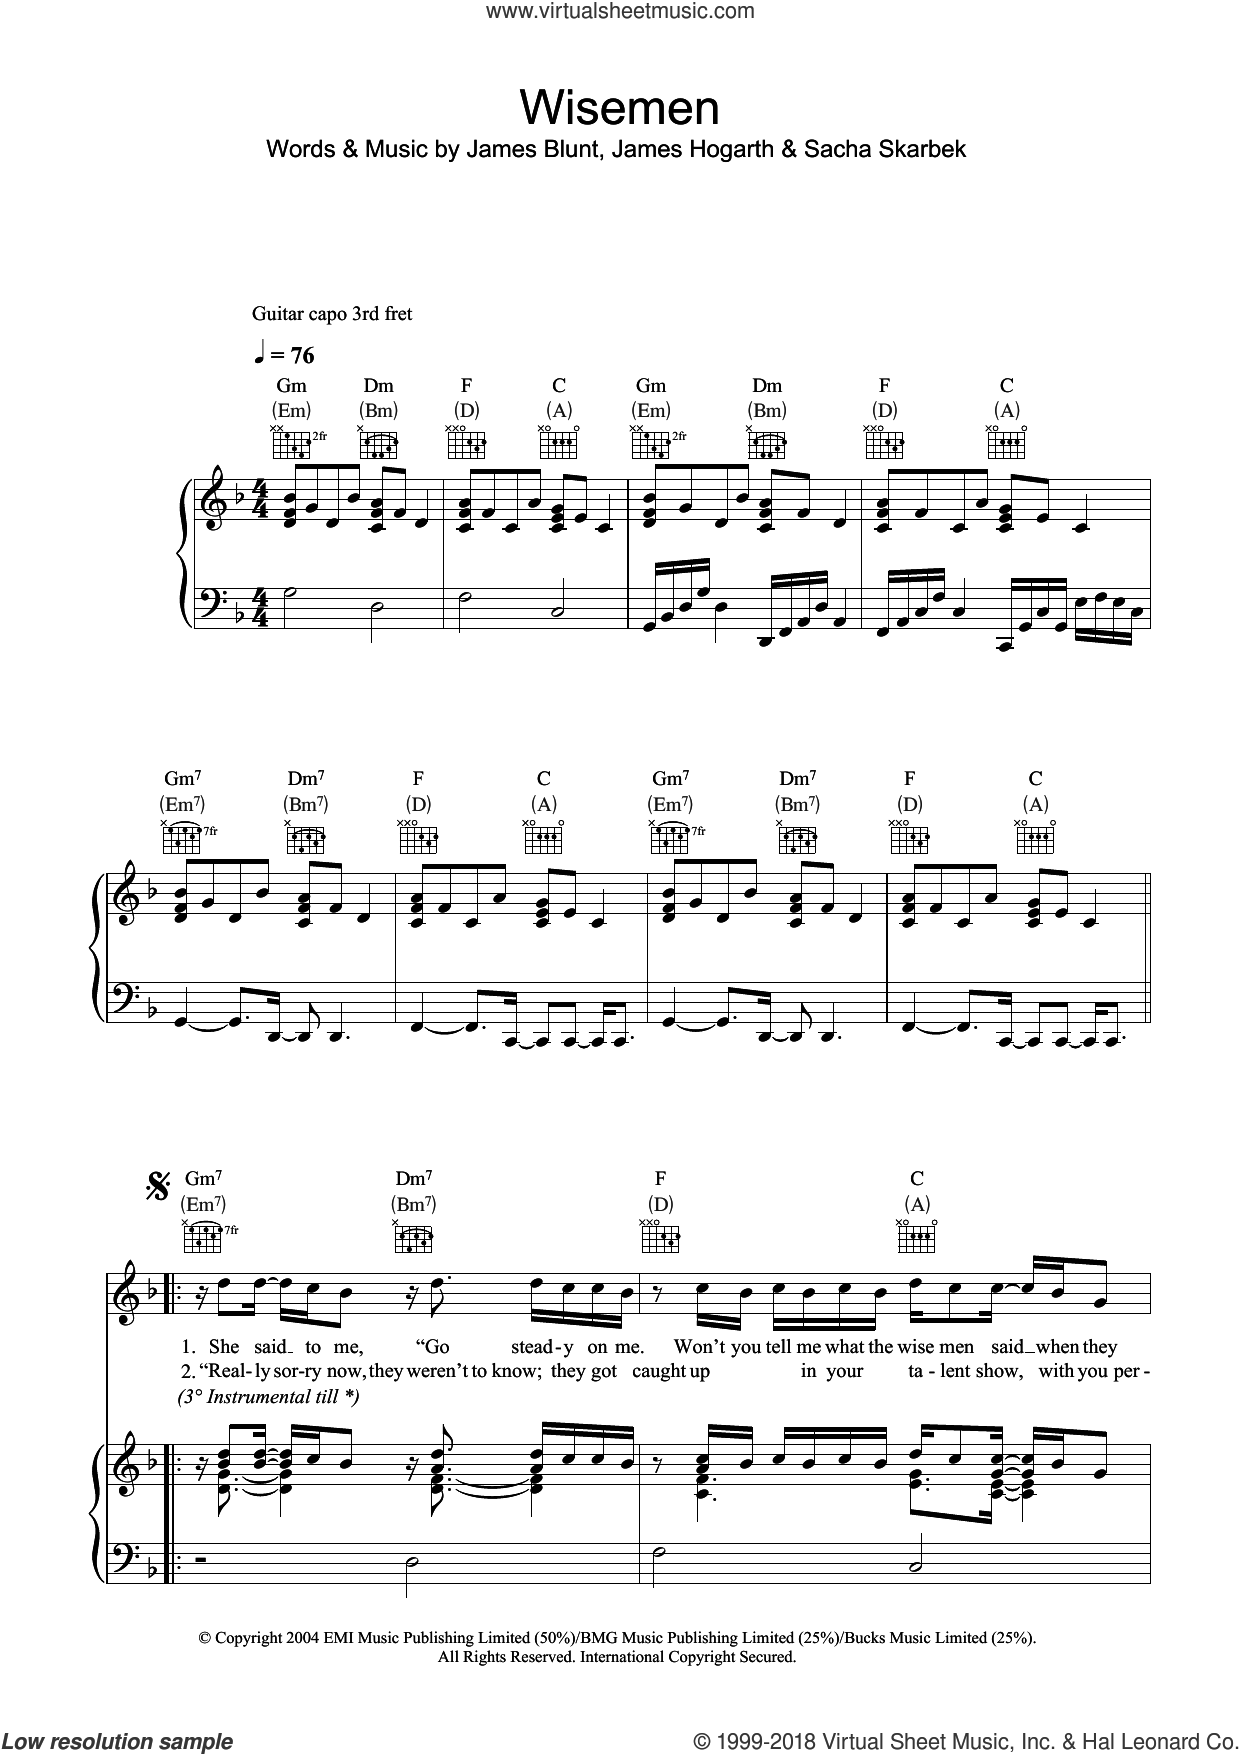 Wisemen sheet music for voice, piano or guitar by James Blunt, James Hogarth and Sacha Skarbek, intermediate skill level